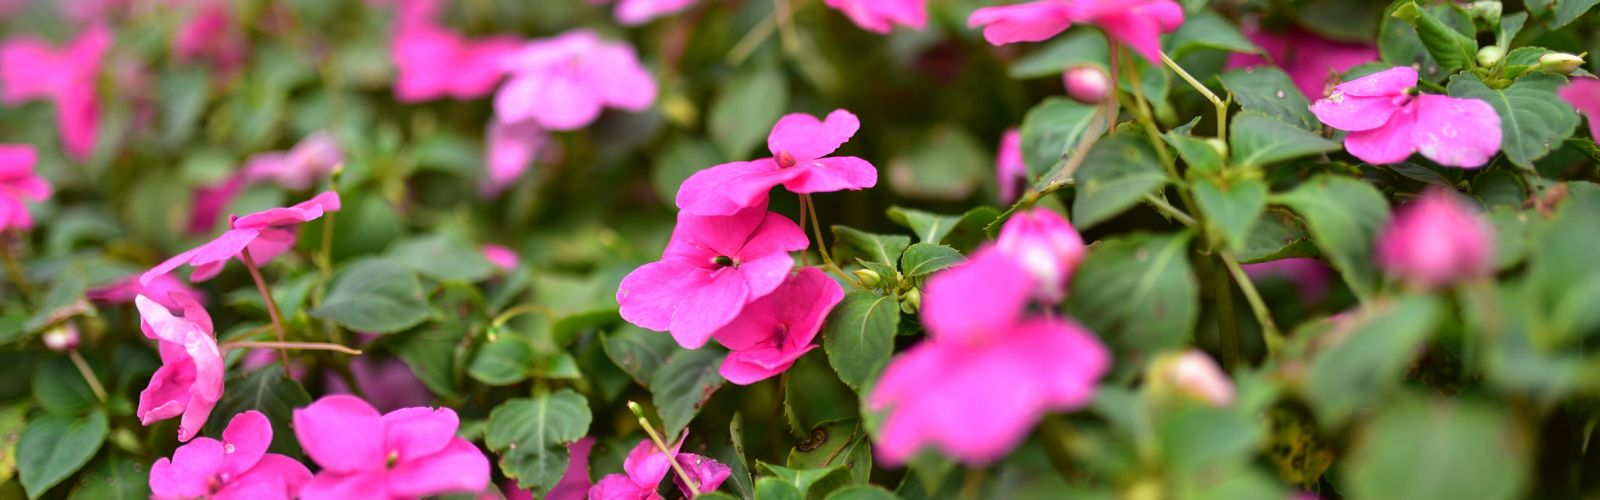 closeup on a pink flowers